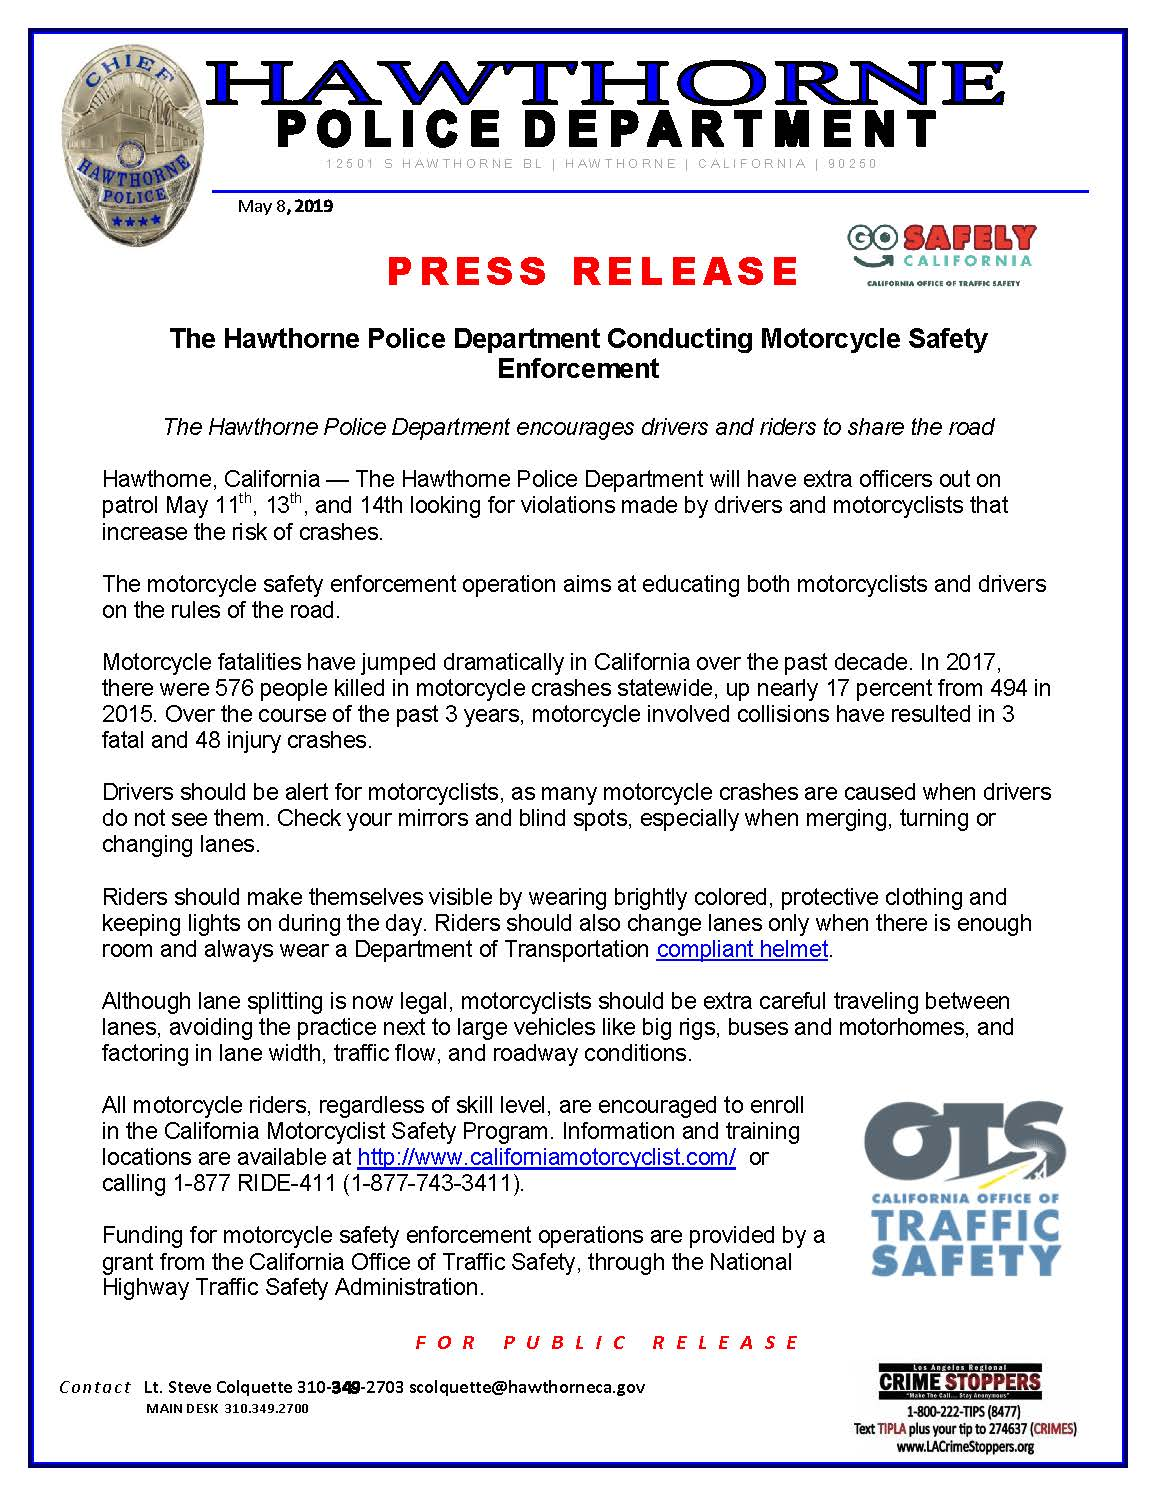 The Hawthorne Police Department Conducting Motorcycle Safety Enforcement